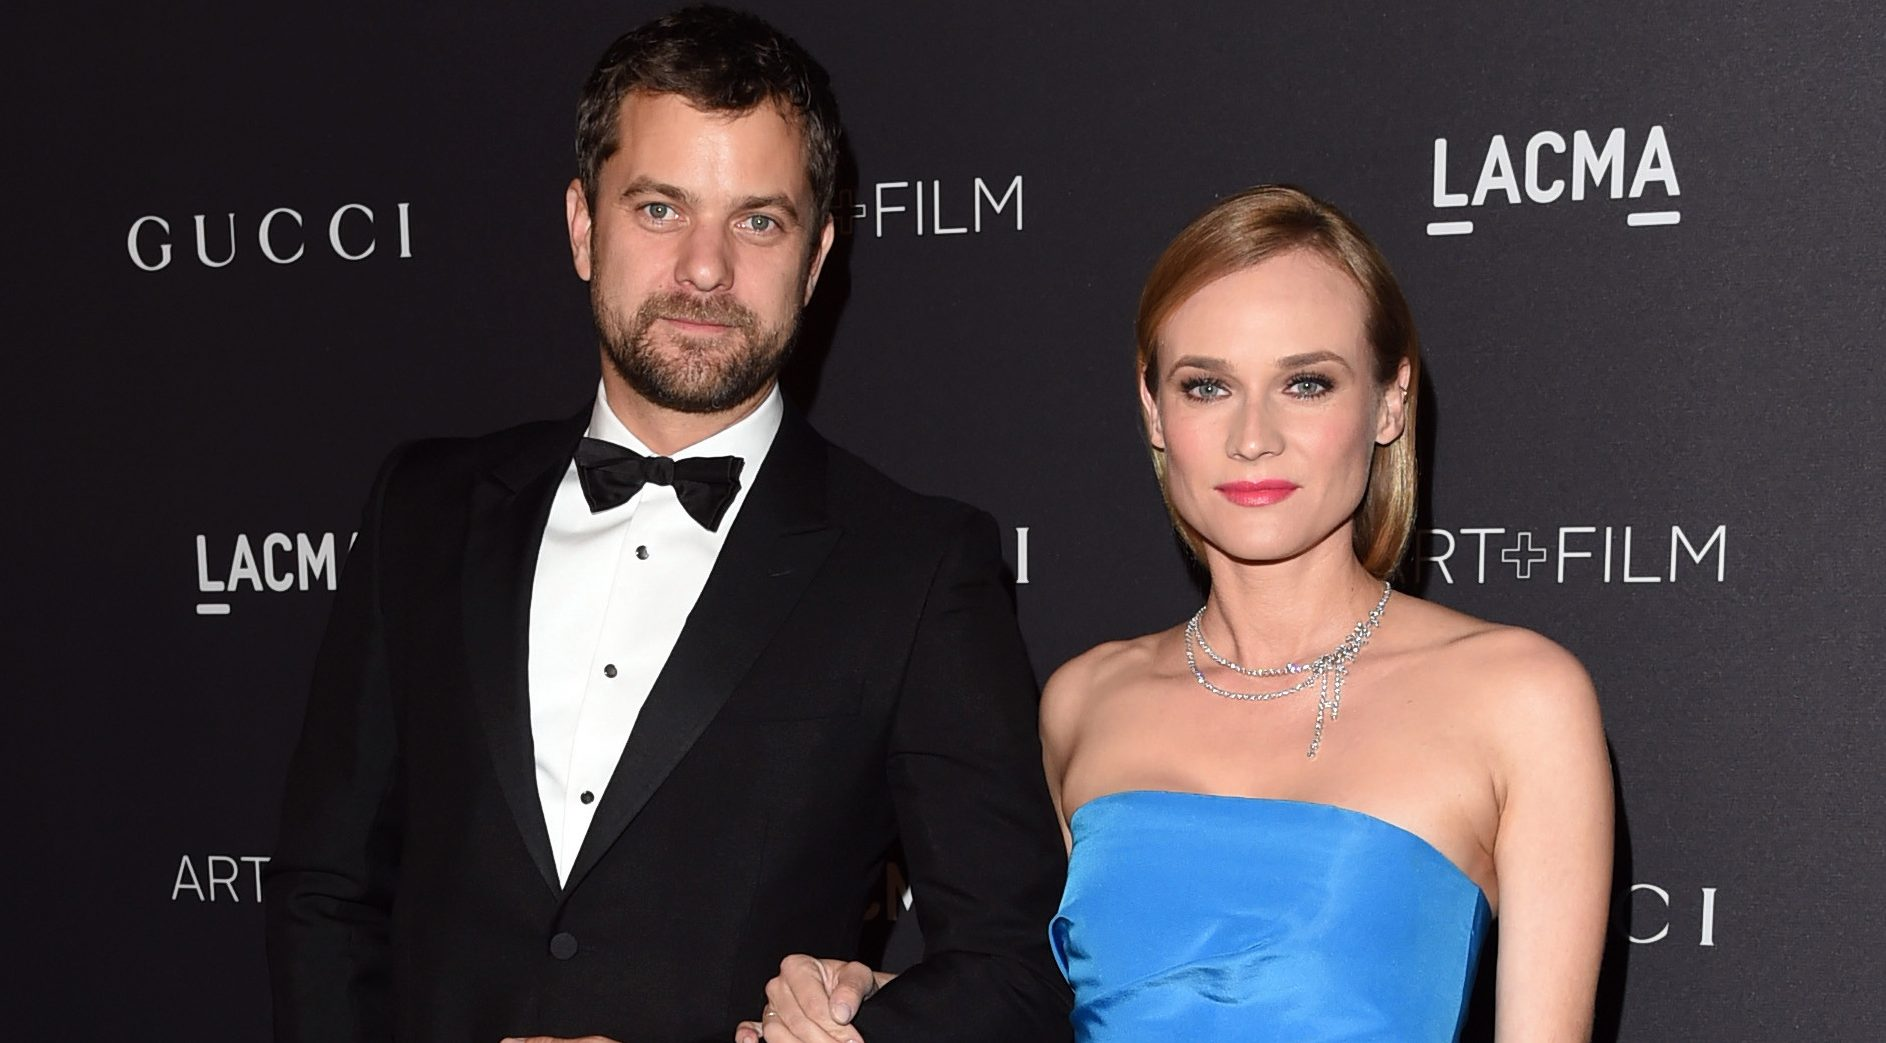 Diane Kruger 'fell into a dark place' after split from Joshua Jackson